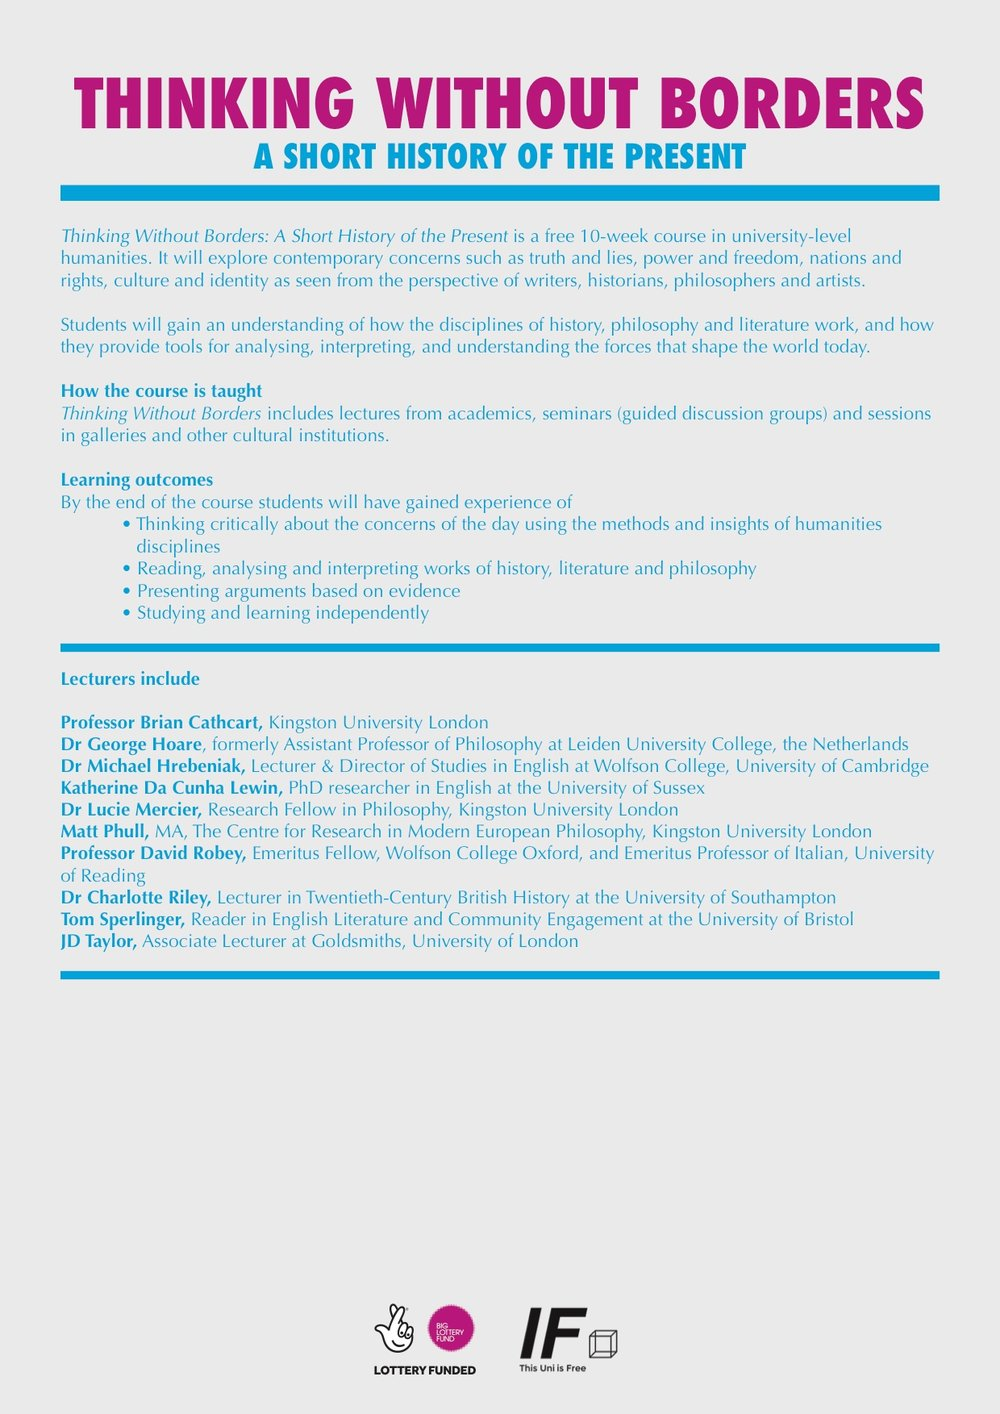 Thinking Without Borders Course Outline Page 1.jpg